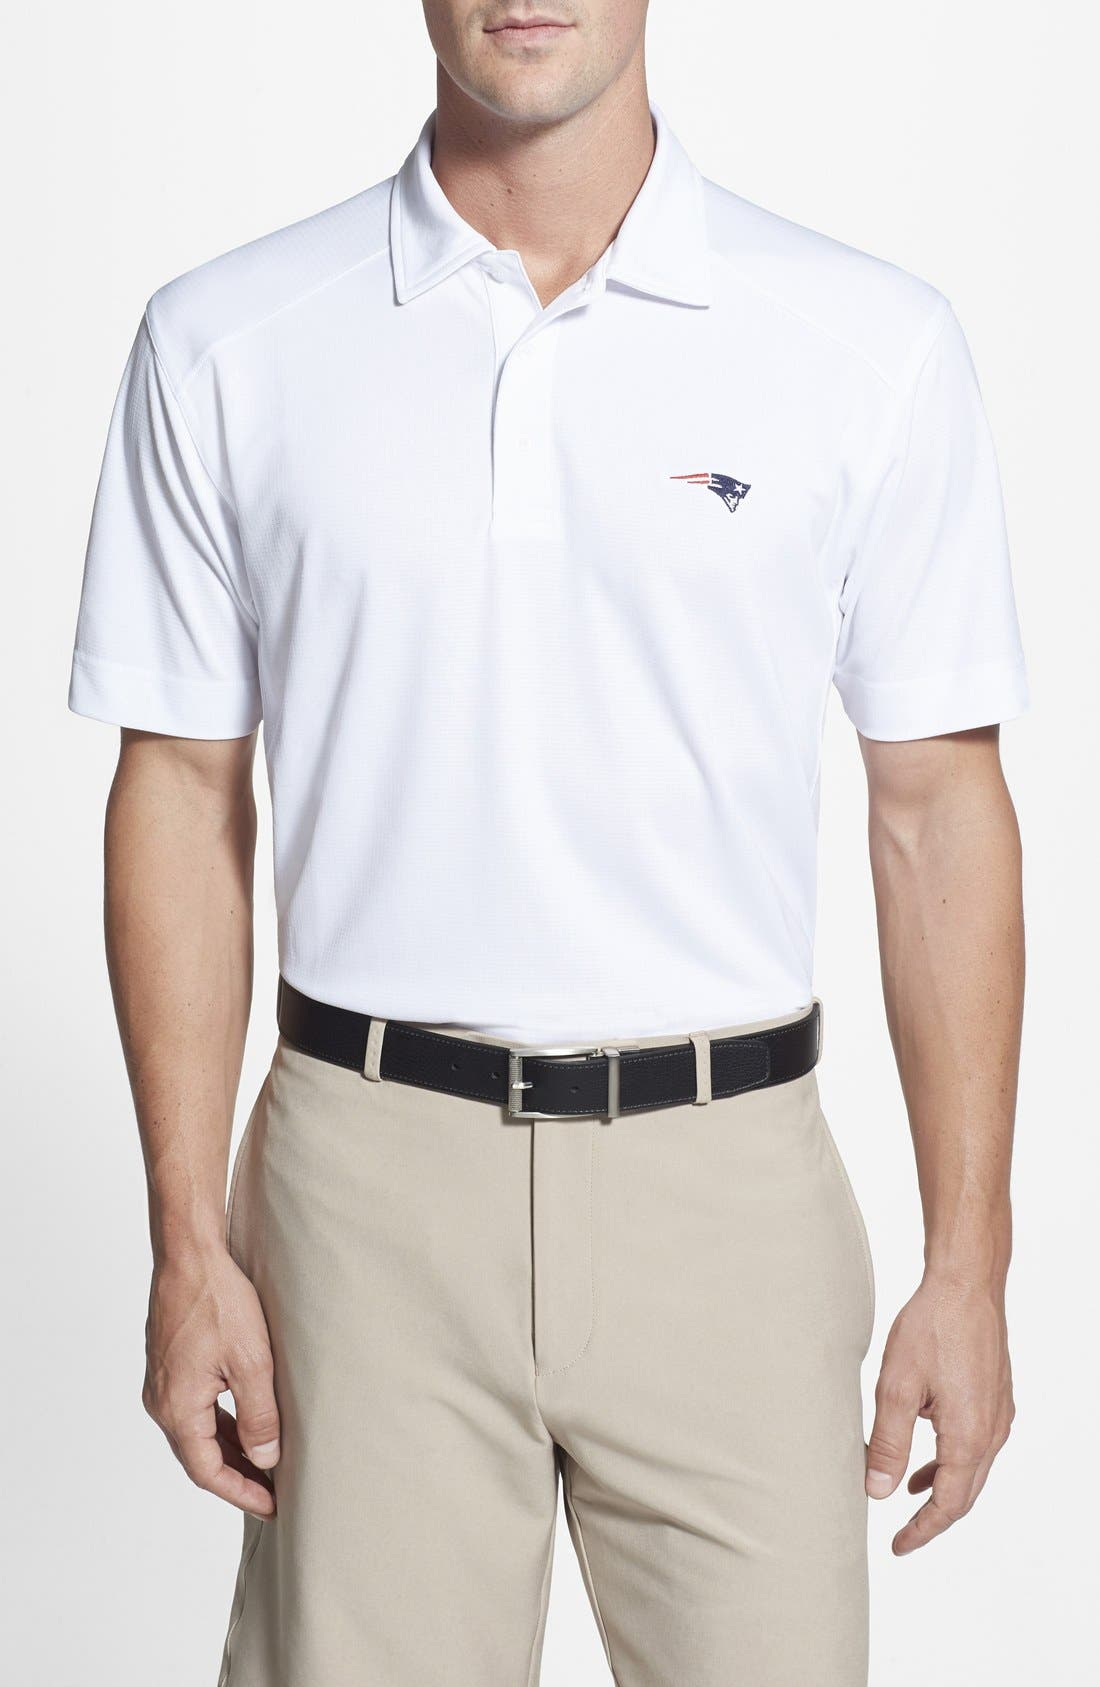 'New England Patriots - Genre' DryTec Moisture Wicking Polo,                         Main,                         color, 100